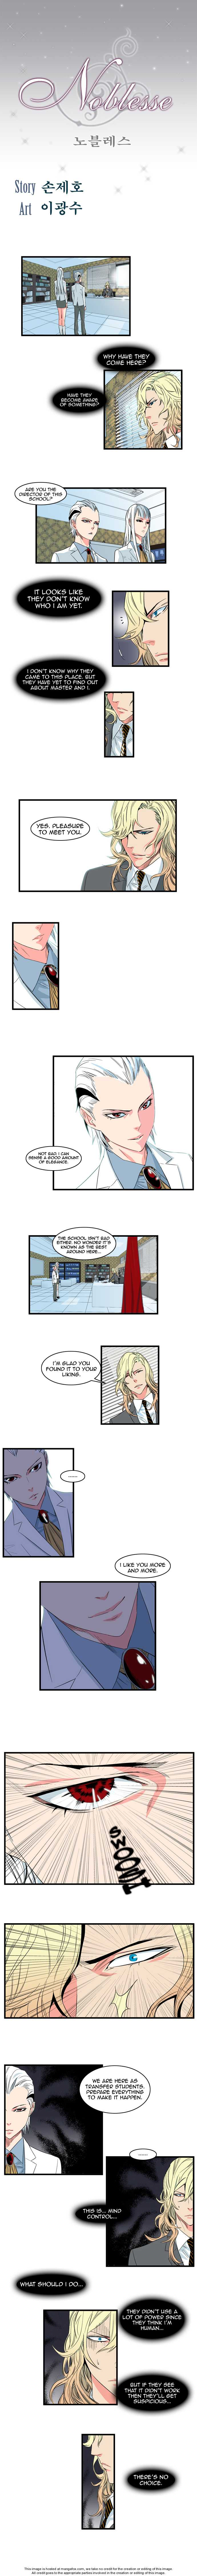 Noblesse 99 Page 1